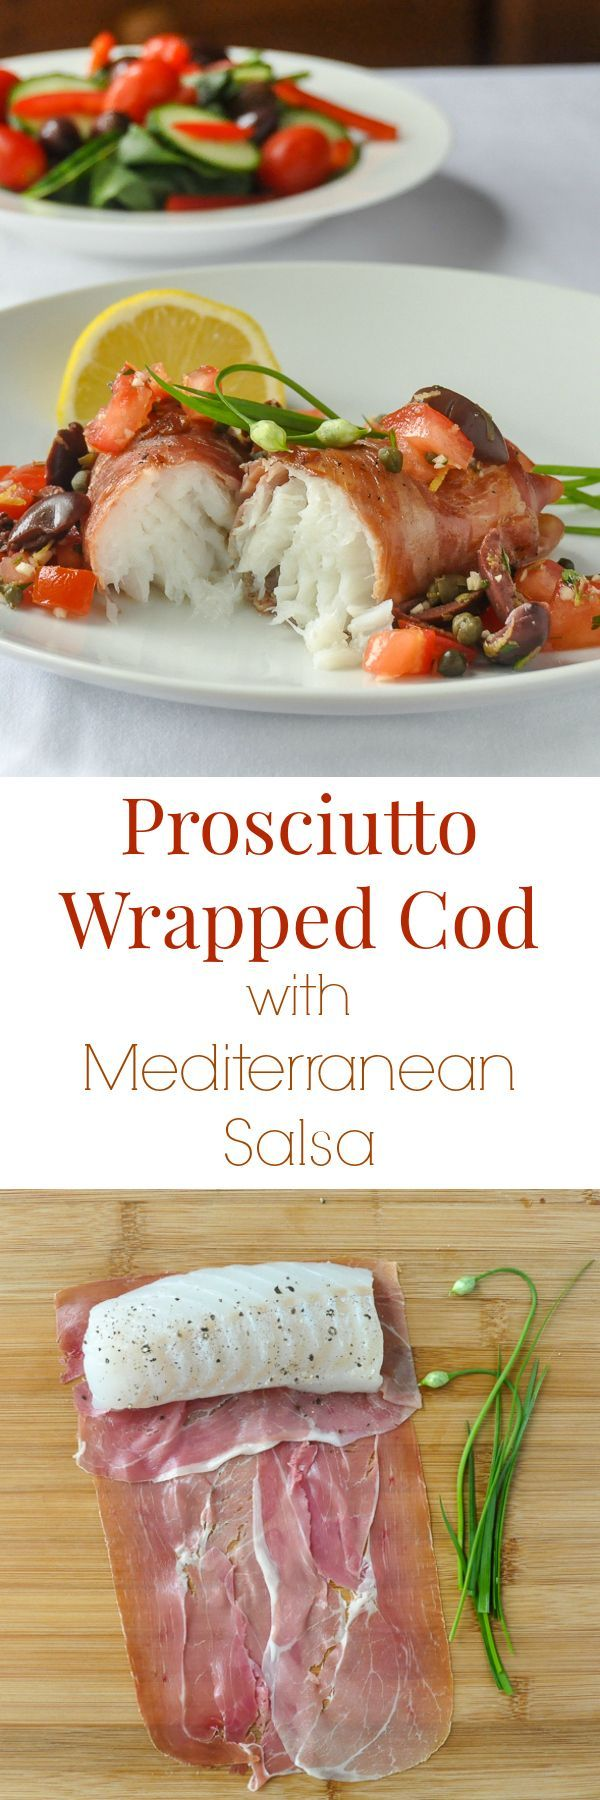 Prosciutto Wrapped Cod with Mediterranean Salsa - beautiful fresh north Atlantic cod wrapped in prosciutto and served with a Mediterranean inspired salsa. #ad